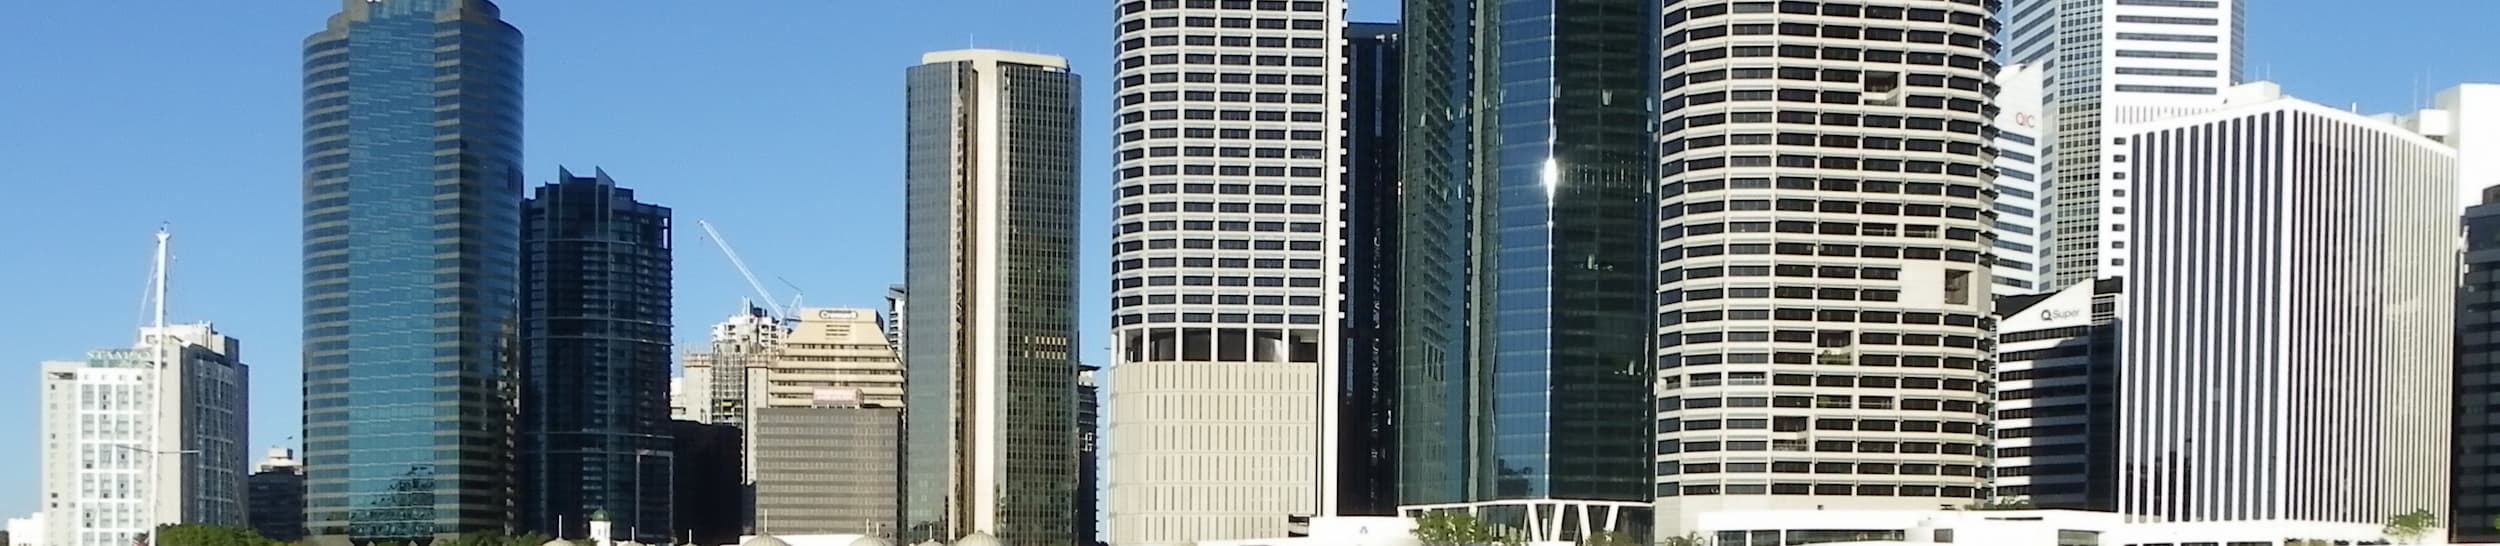 Skyline of Brisbane